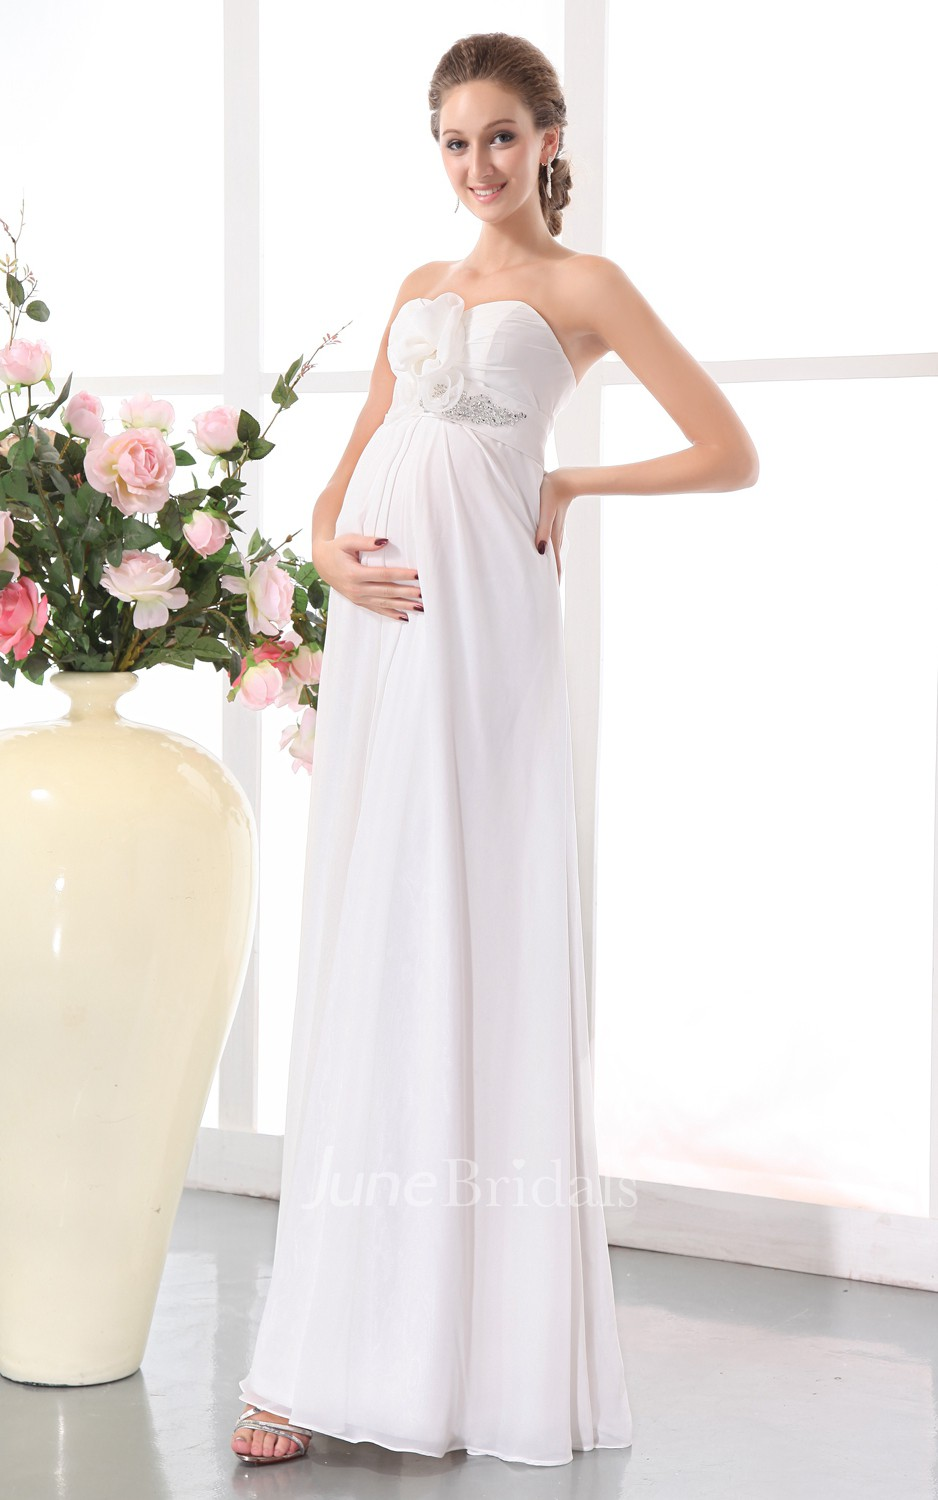 Sweetheart Sleeveless Floral Soft Flowing Fabric Empire